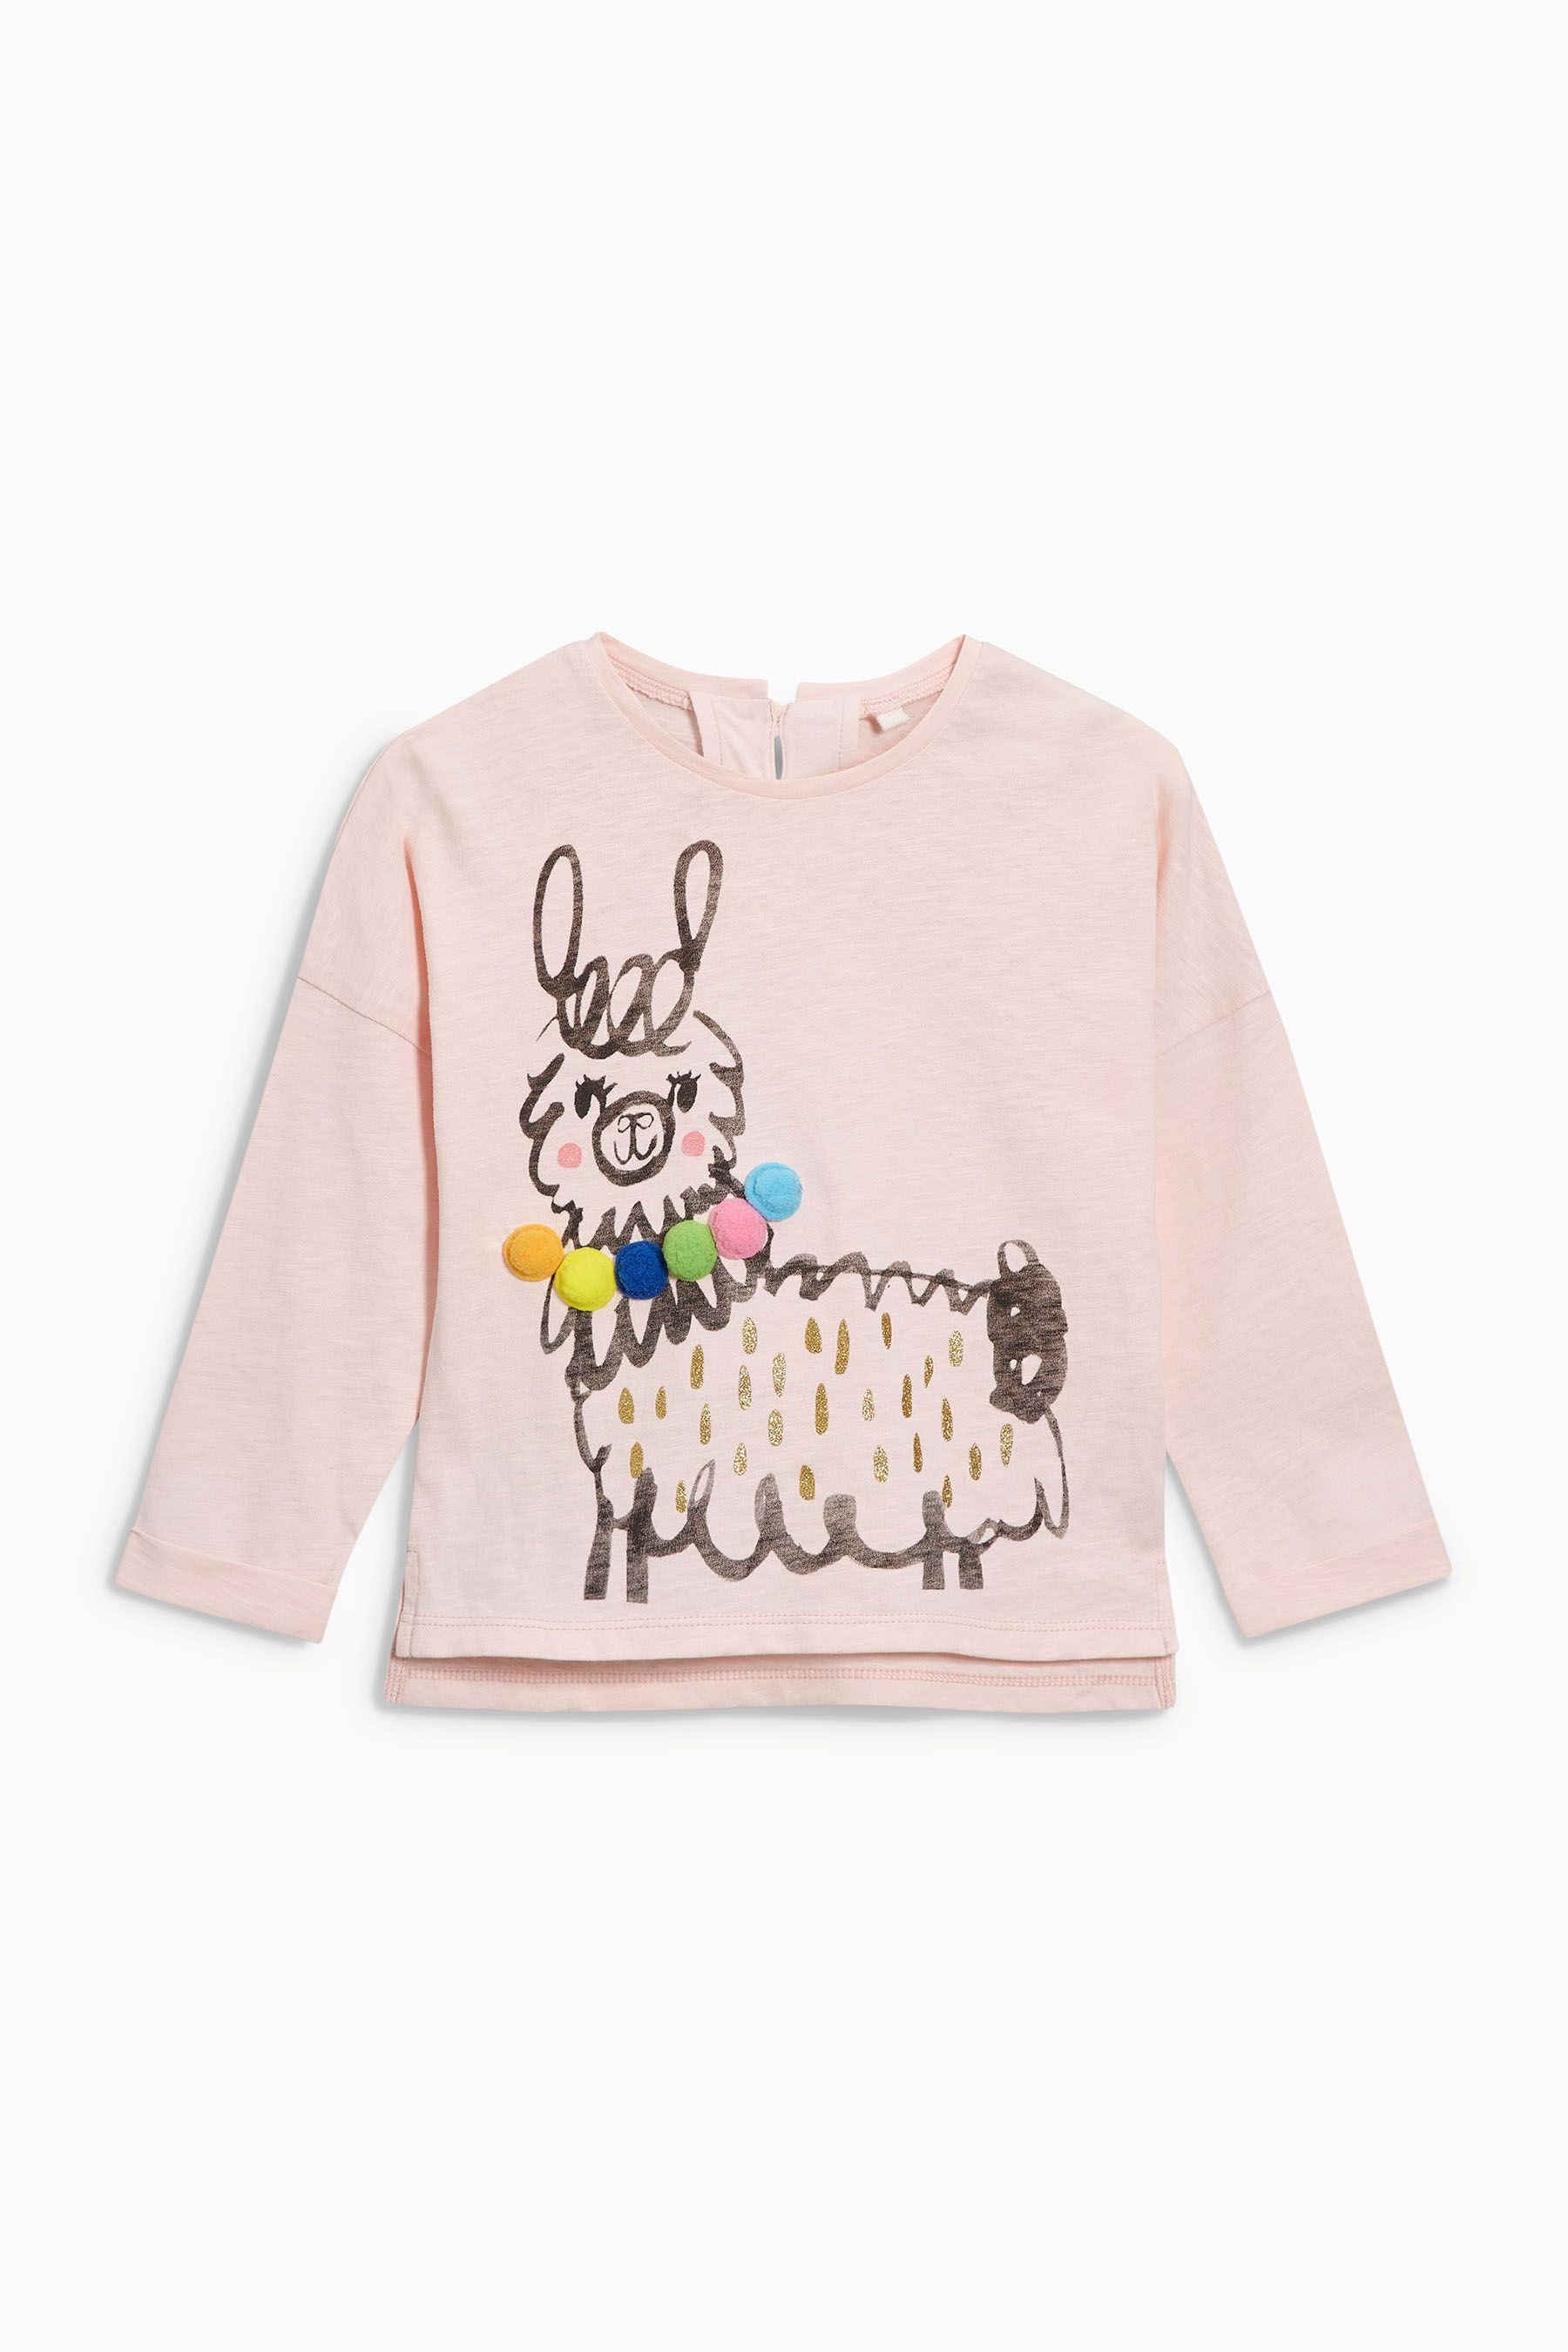 Buy Pink Llama T Shirt And Tights Set 3mths 6yrs From The Next Uk Online Shop Kids Fashion Clothes Online Kids Clothes Kids Fashion Magazine